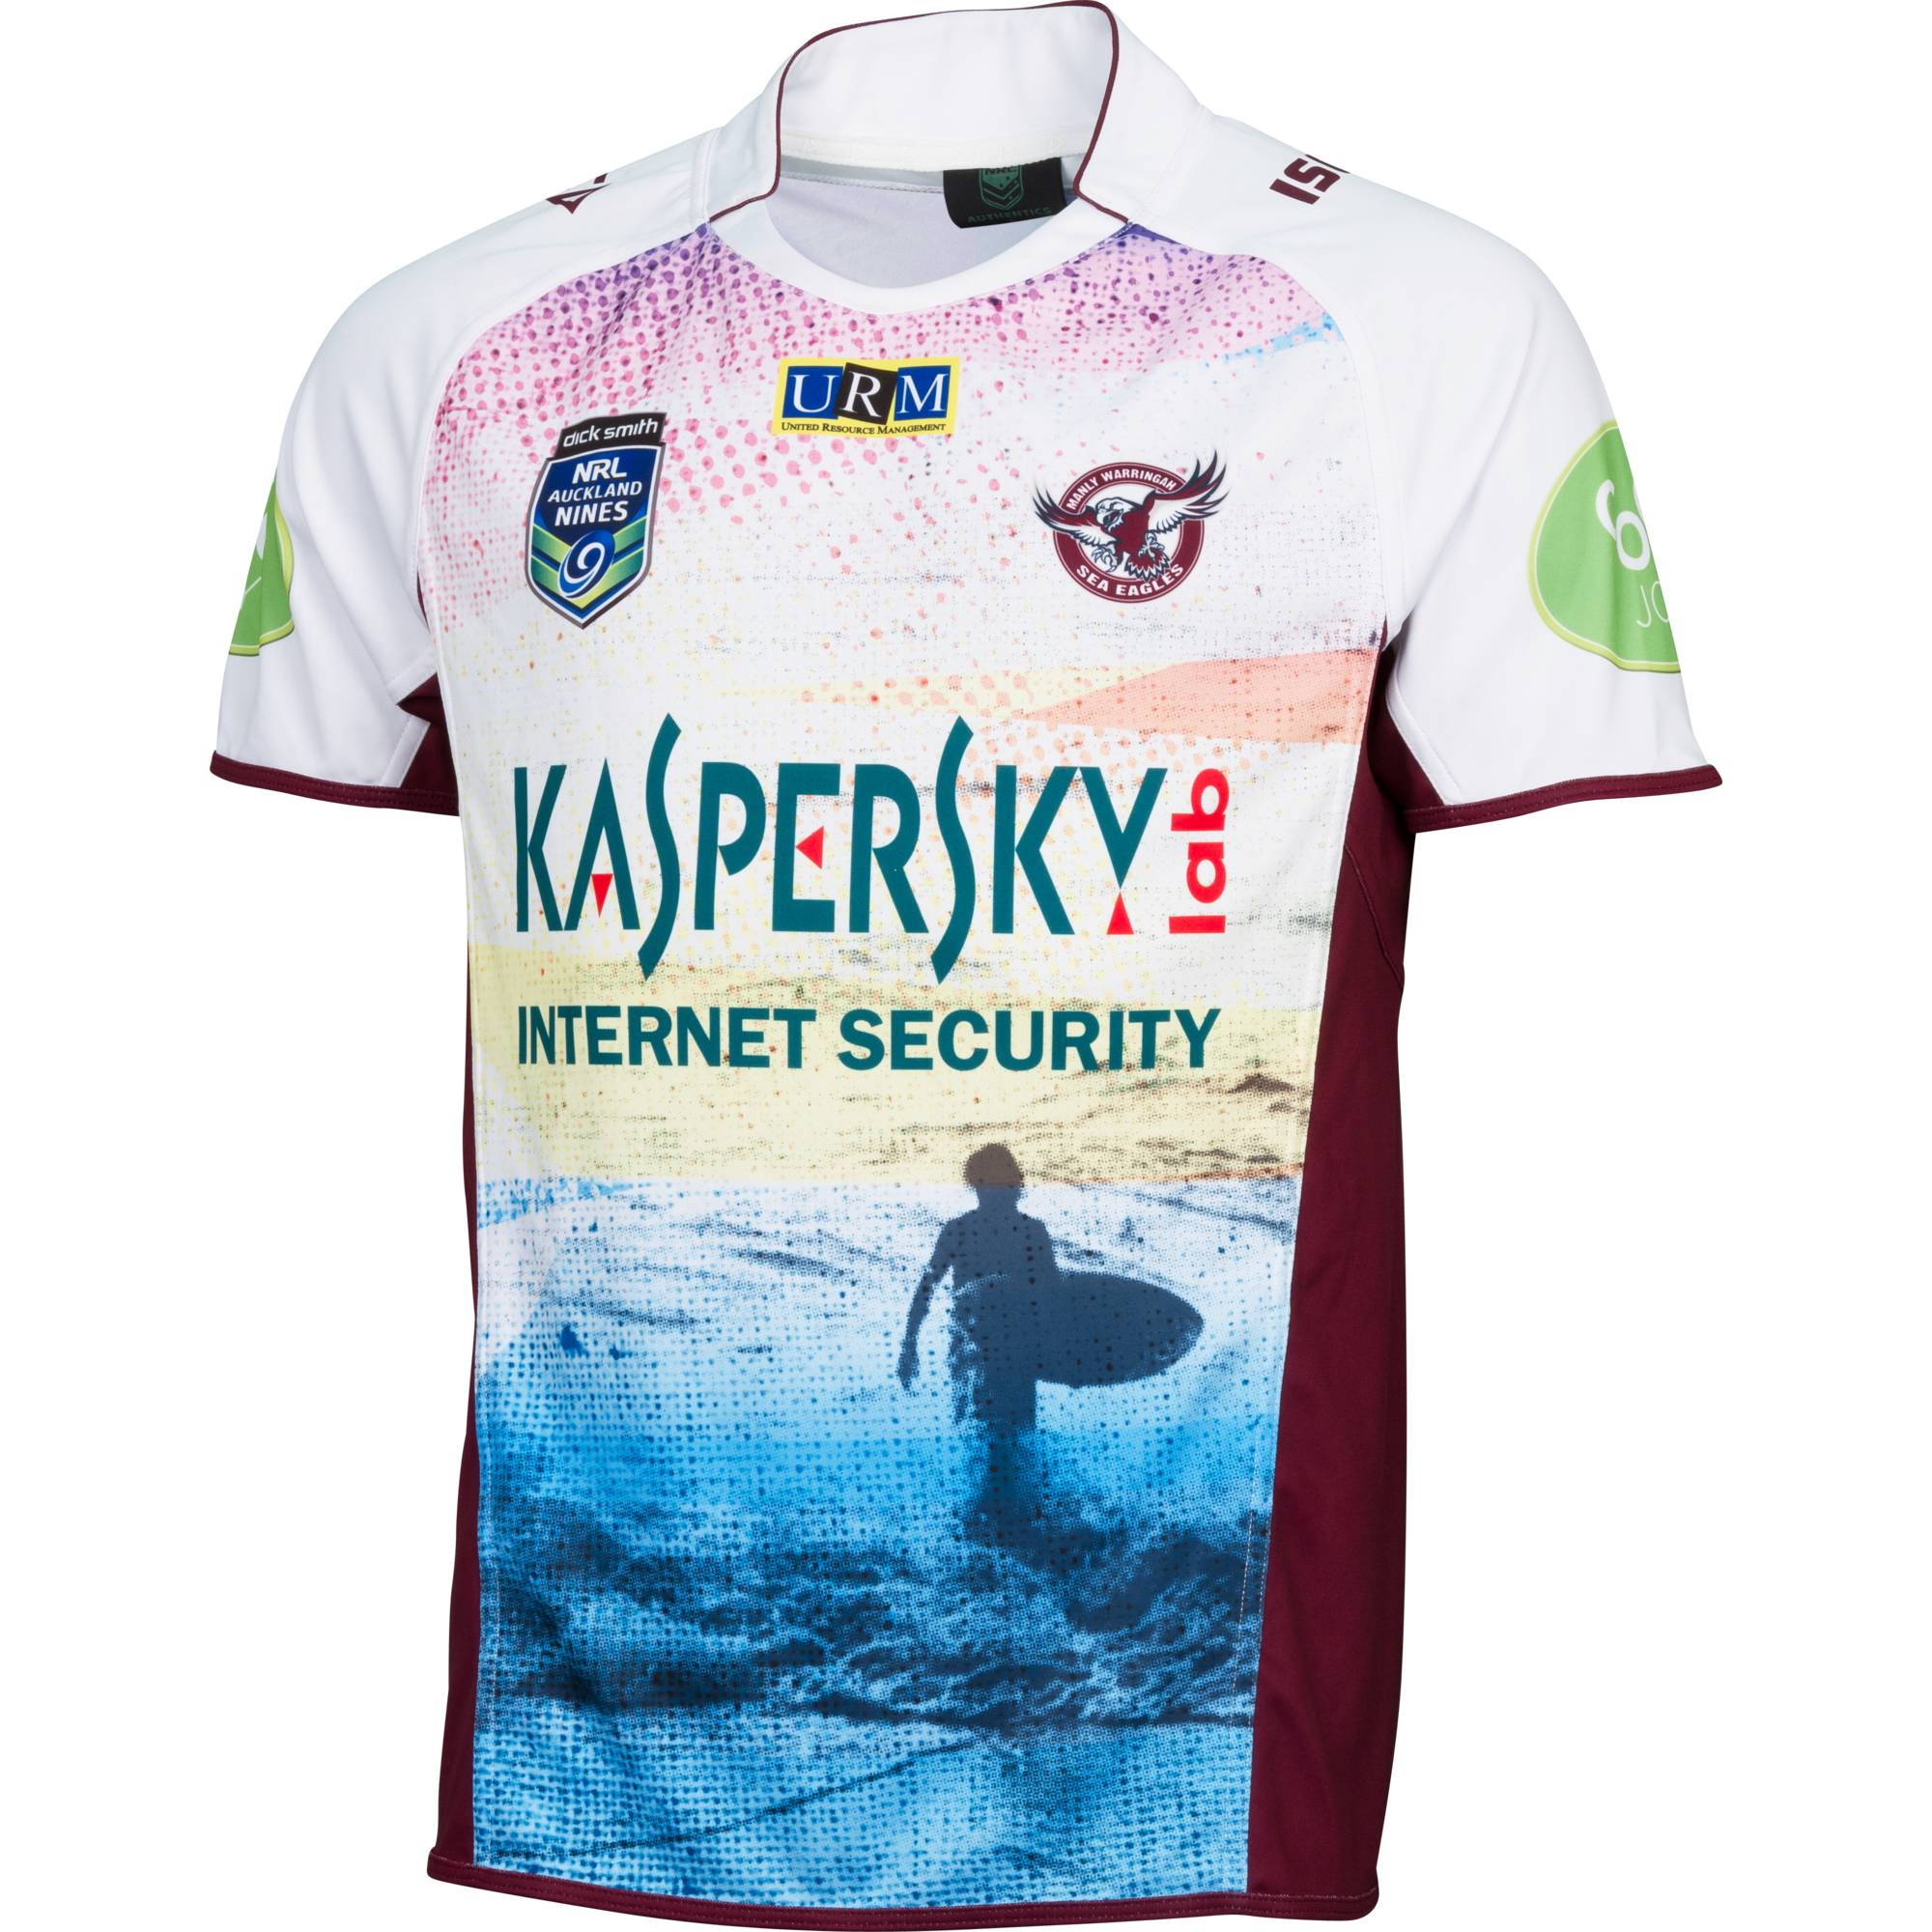 Manly Warringah Sea Eagles. SeaEagles9s2015. In its short history a8eeee437